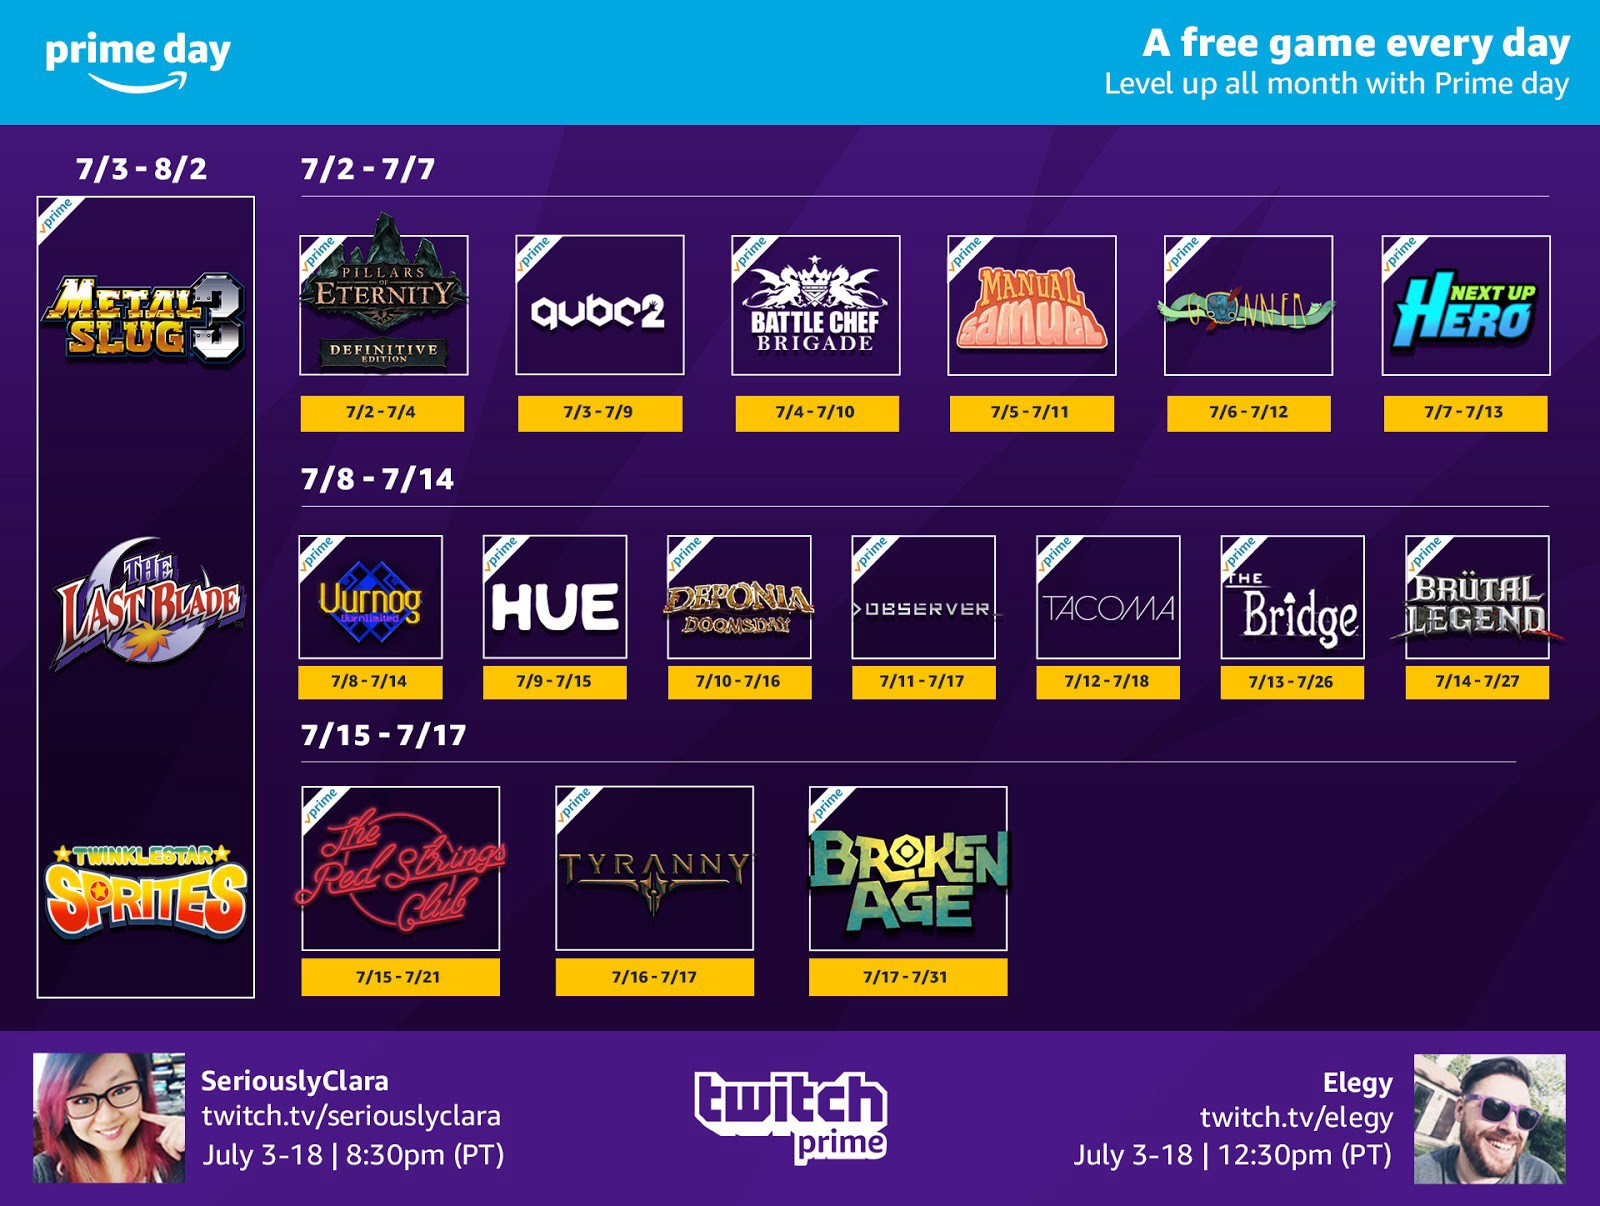 Twitch Prime users get a full month of free games